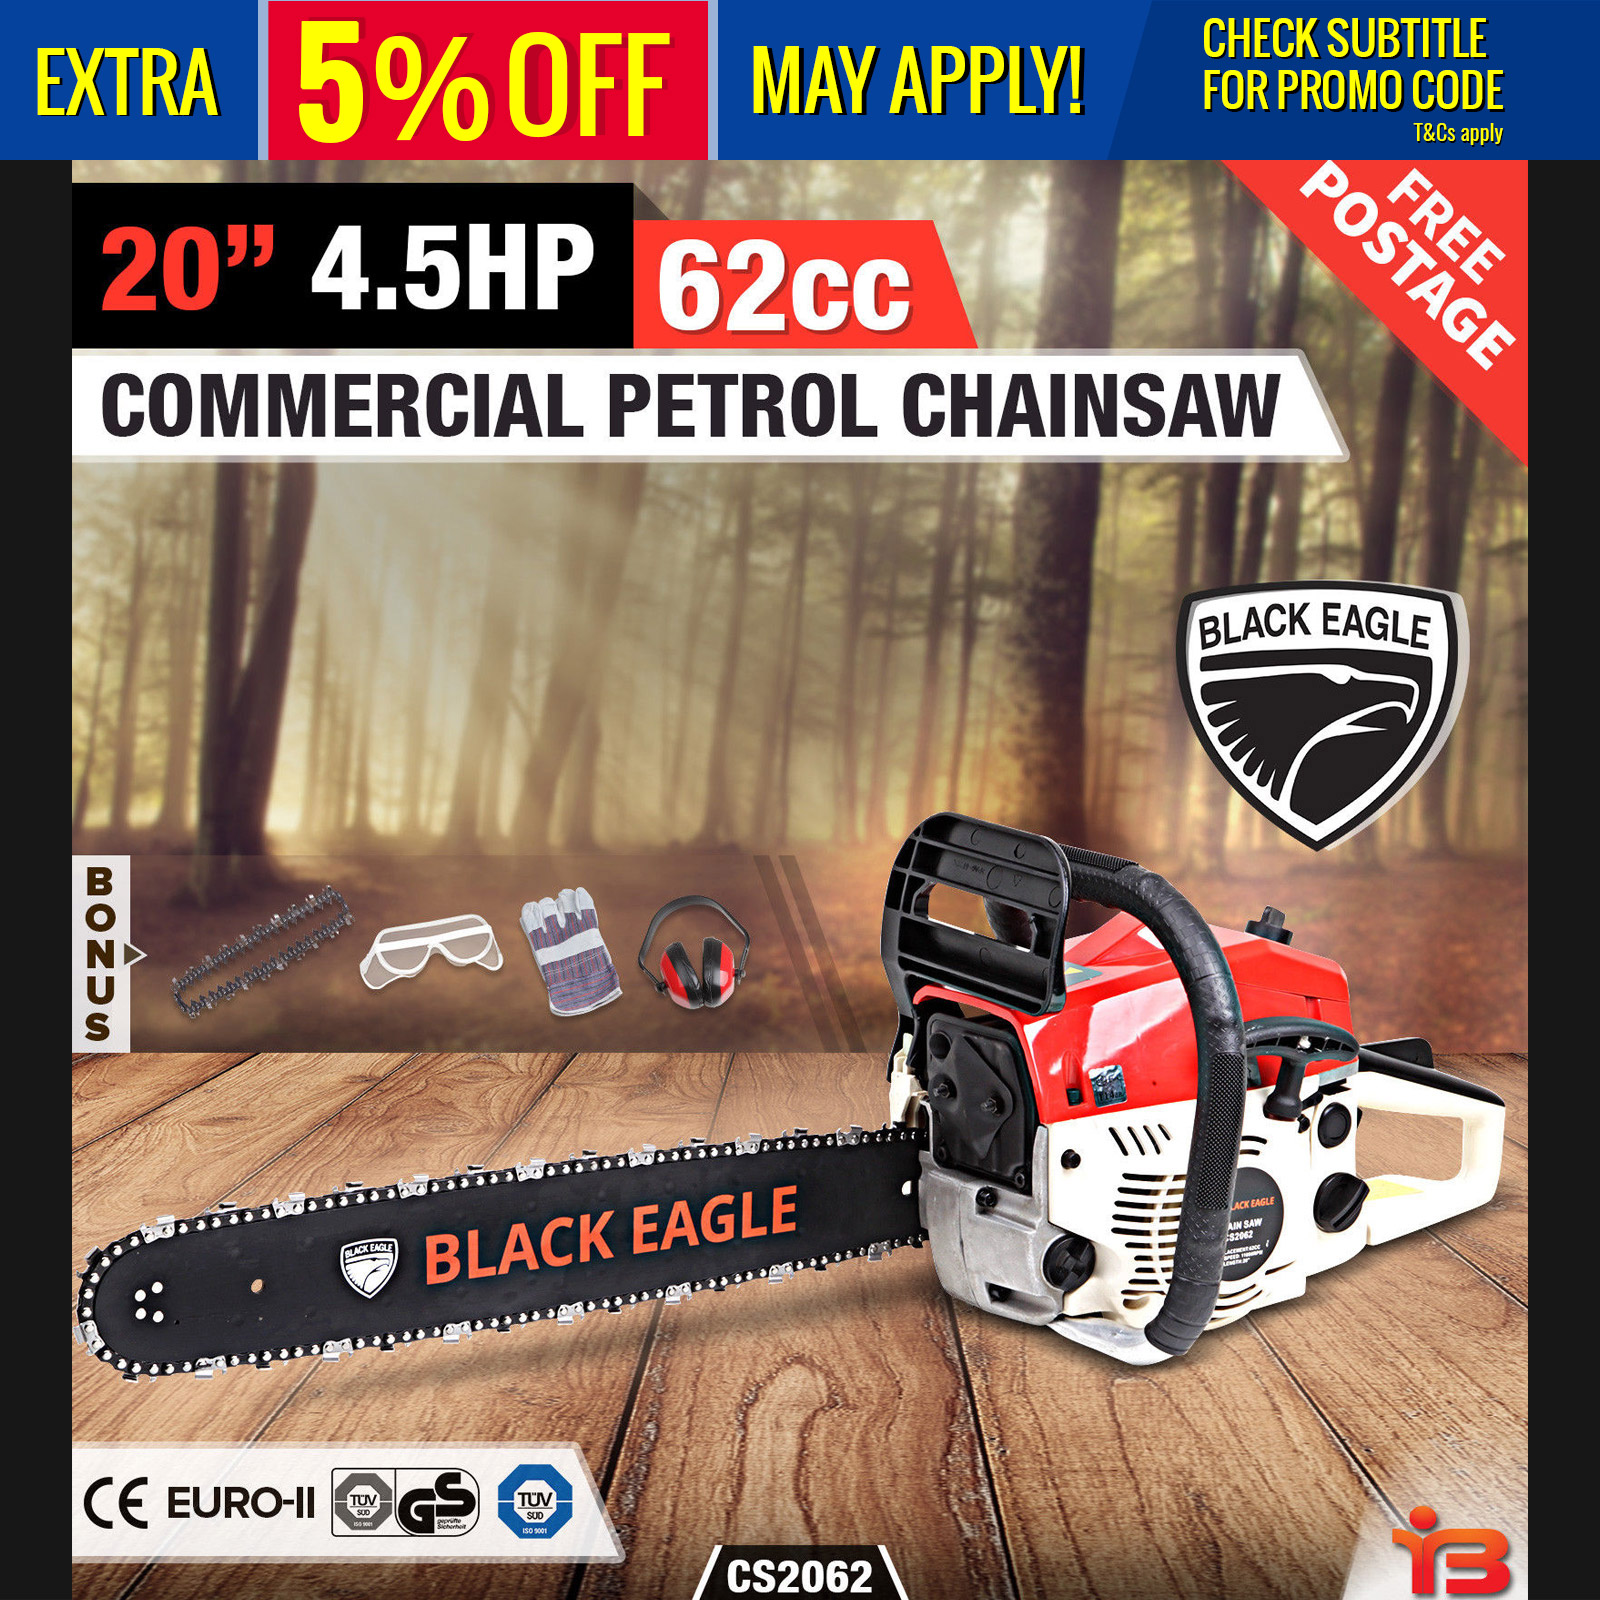 "NEW BlackEagle 62cc Commercial Petrol Chainsaw EStart 20"" Chain Saw Tree Pruning"